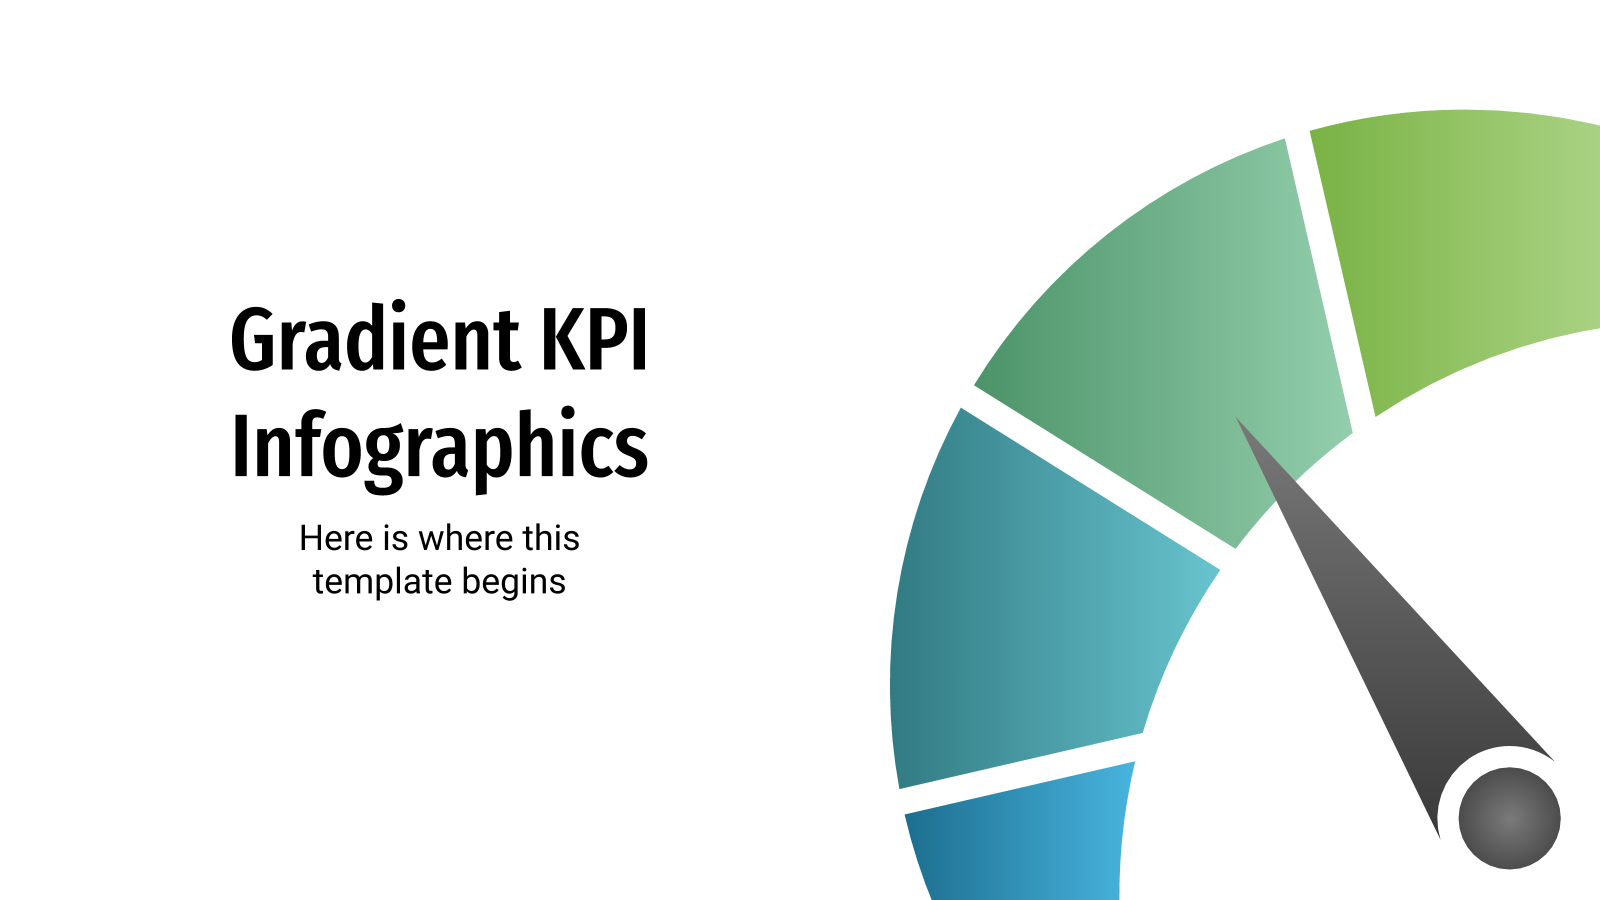 Gradient KPI Infographics presentation template